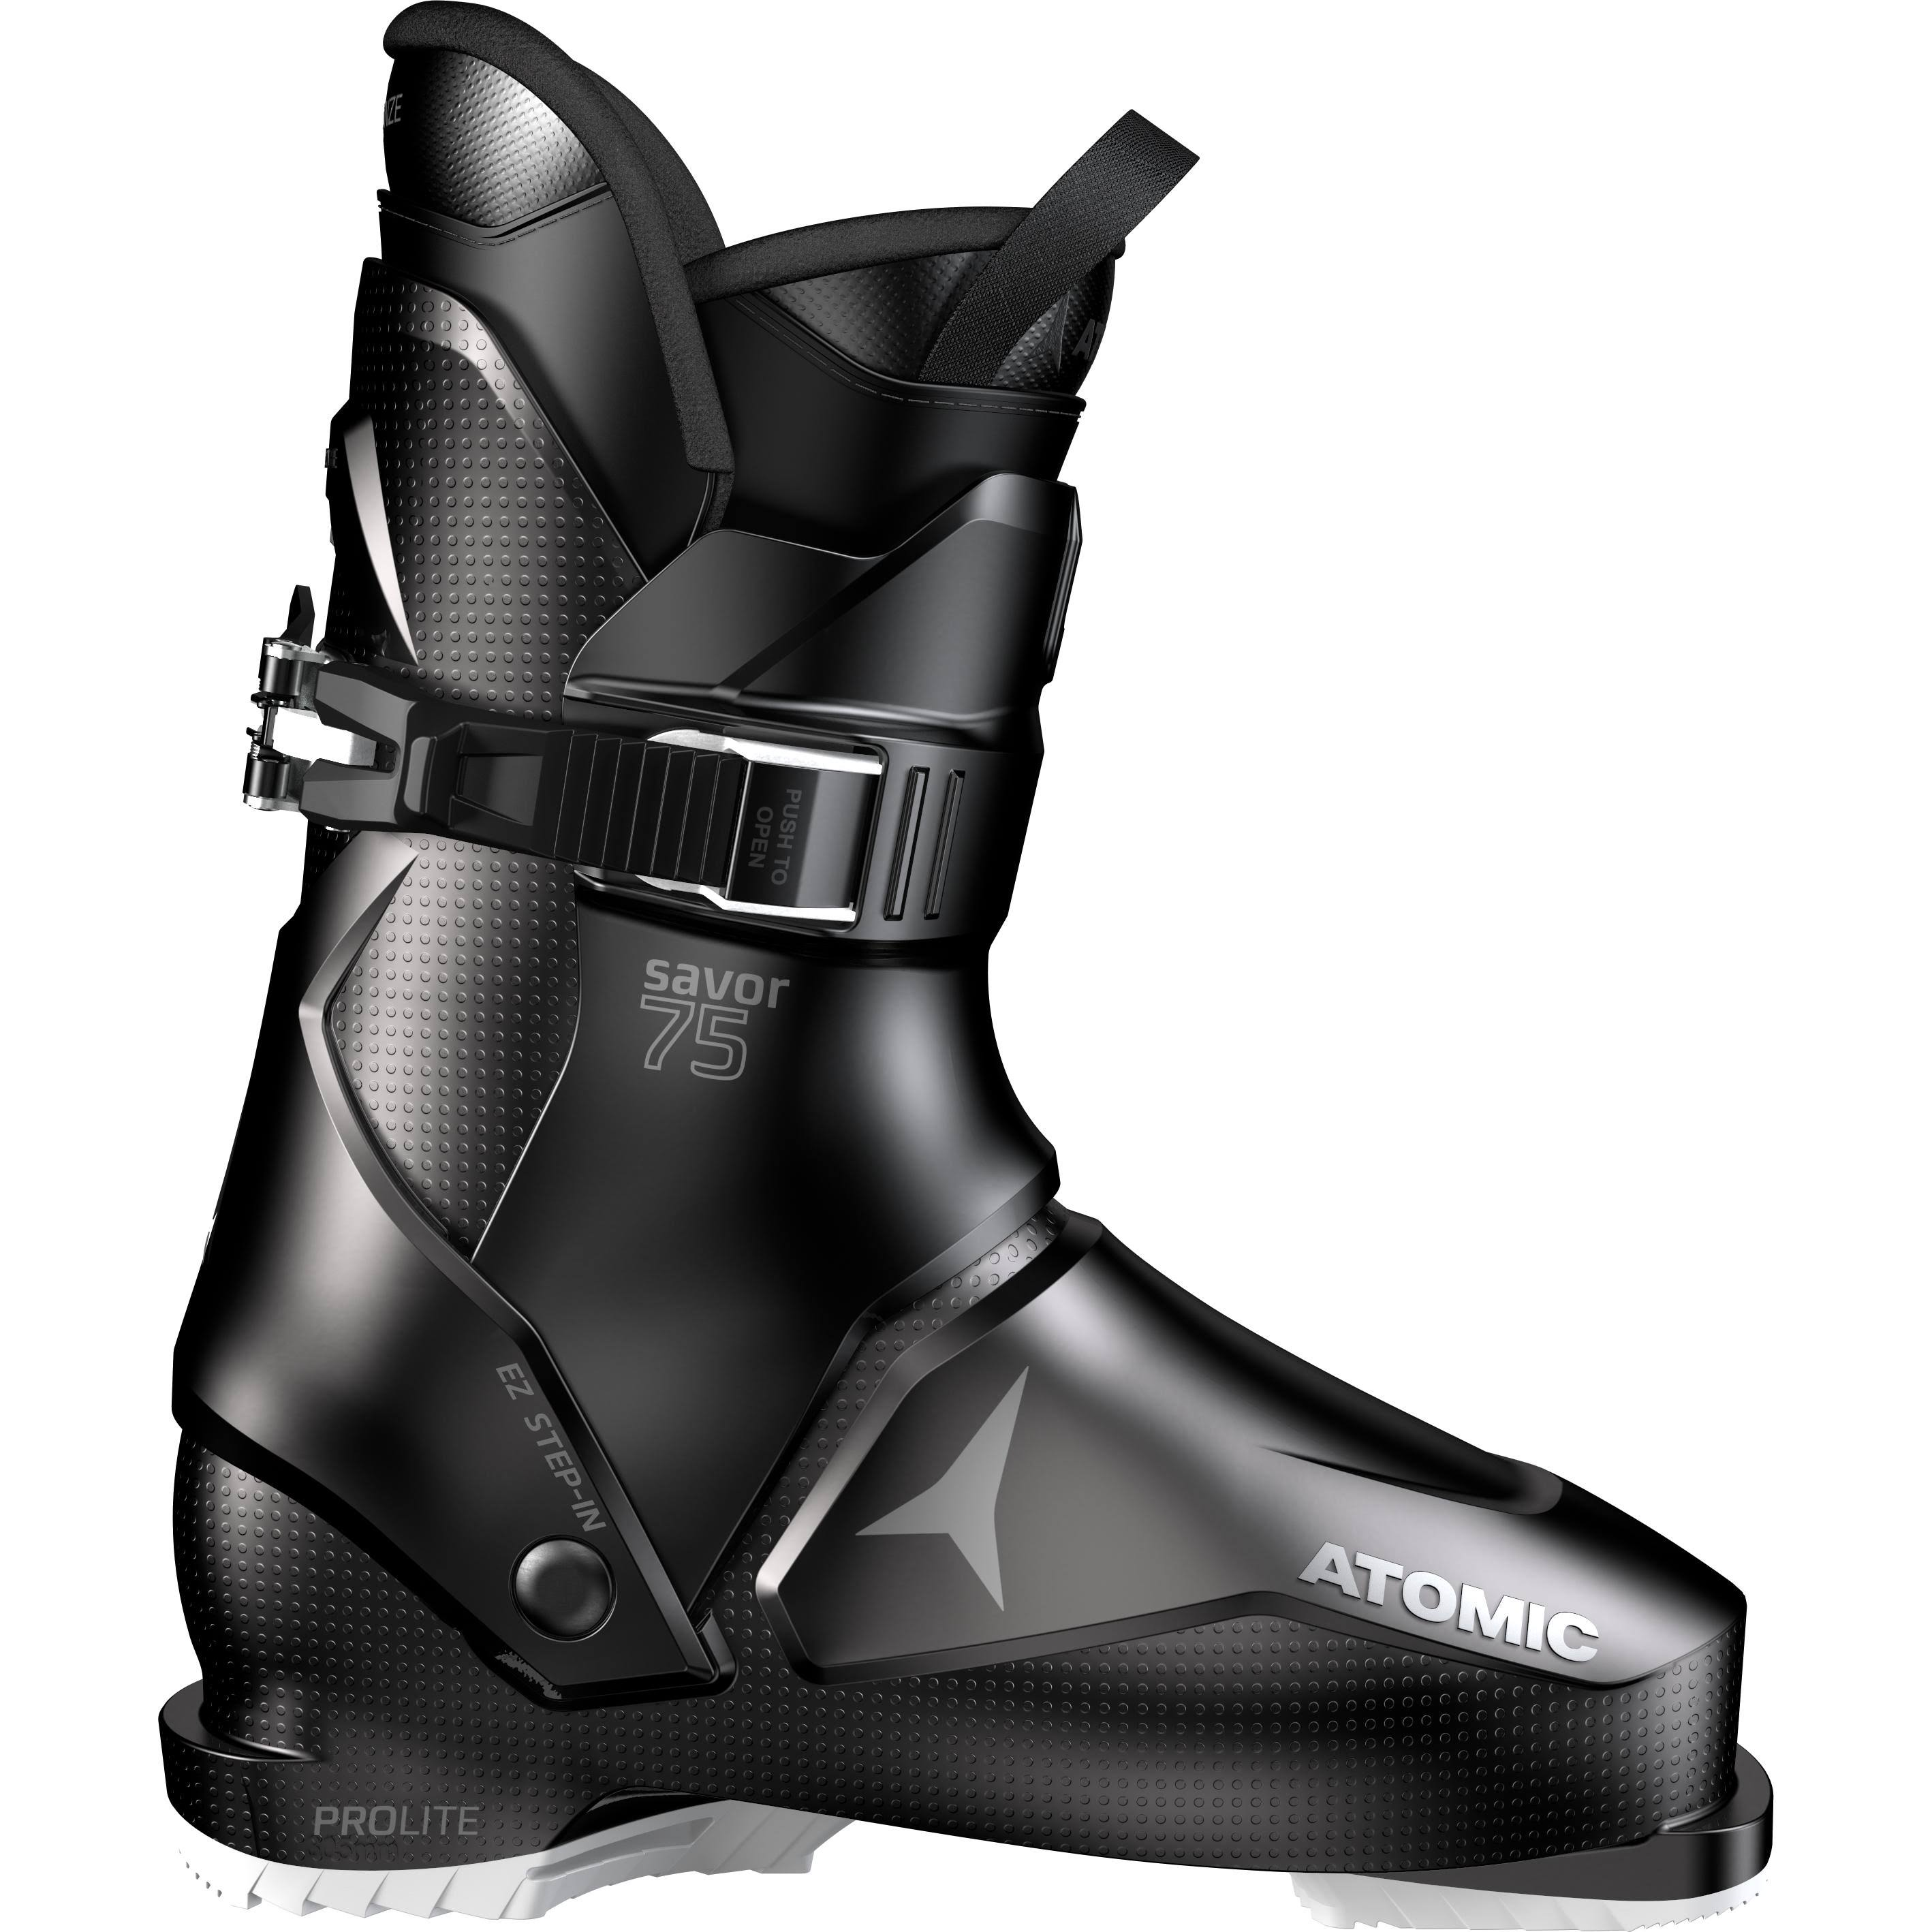 Atomic Savor 75 Women's Ski Boots 2020 Black 25.5